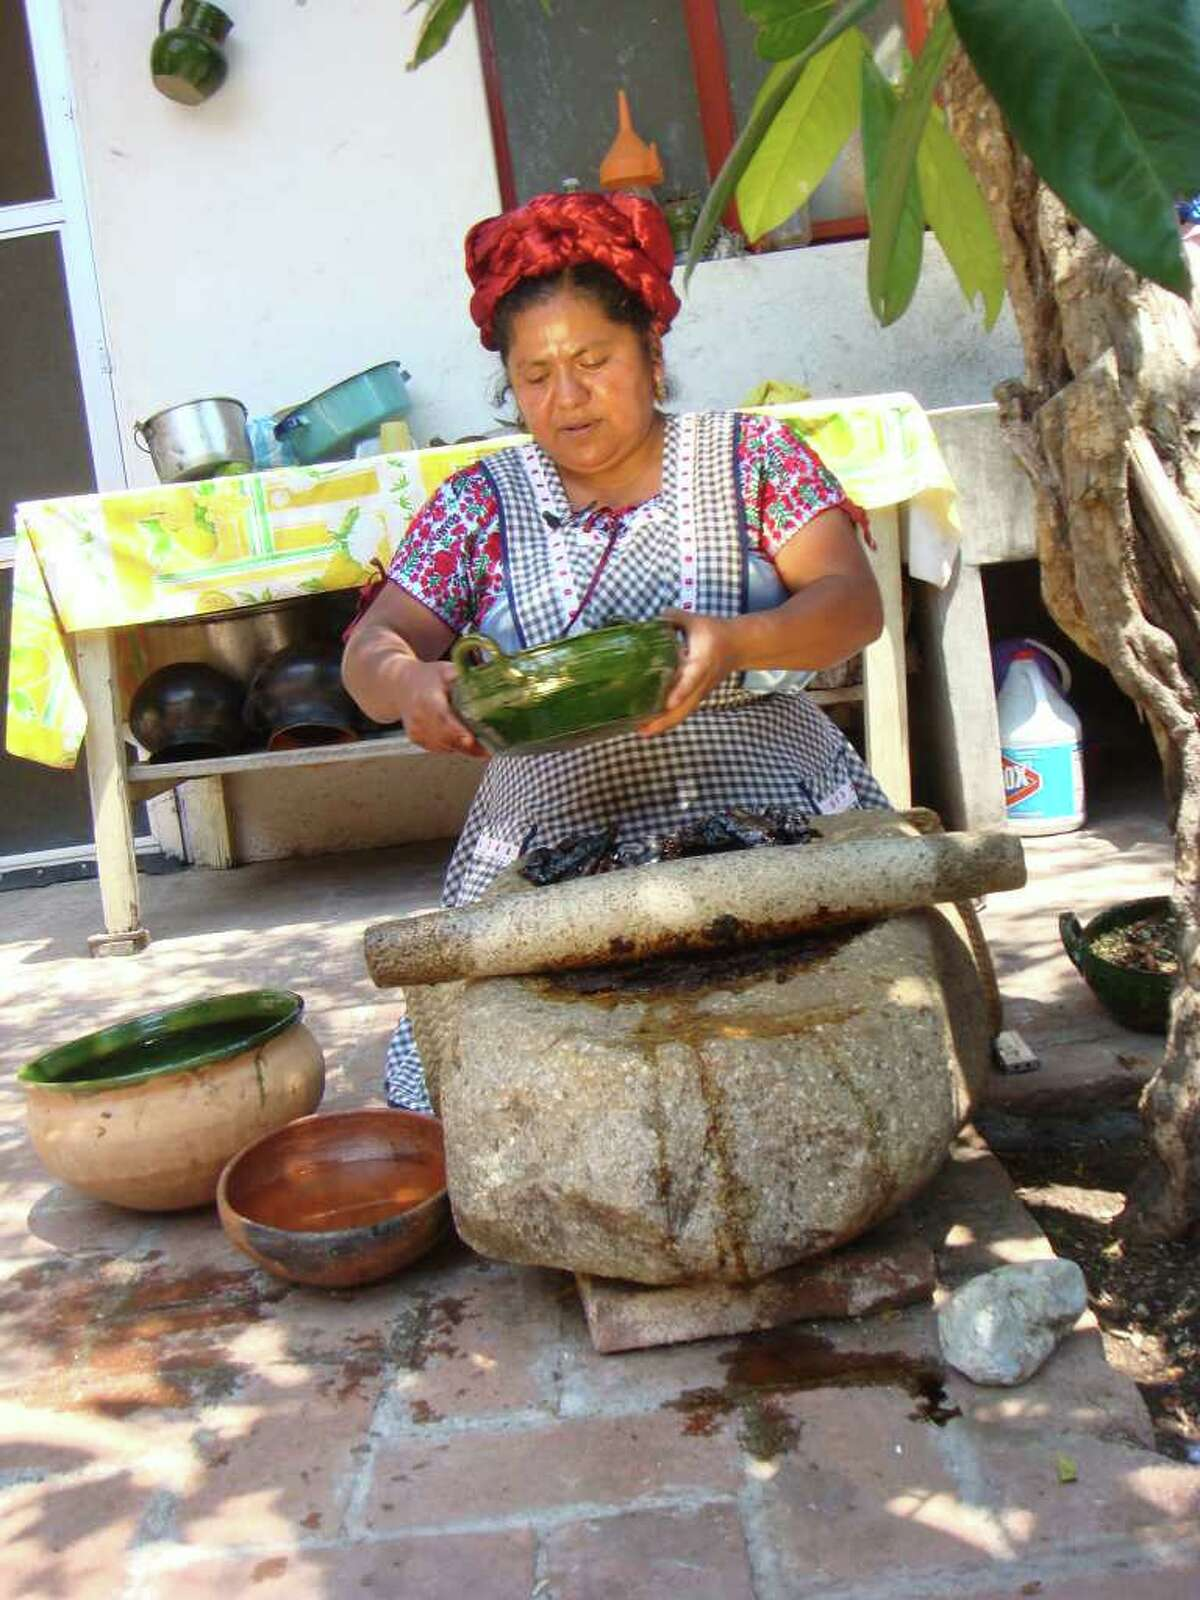 Dish: Mole. In this photo Abigail Mendoza prepares mole in Oaxaca, Mexico. Traveling Latin America in search of the culinary past and present.